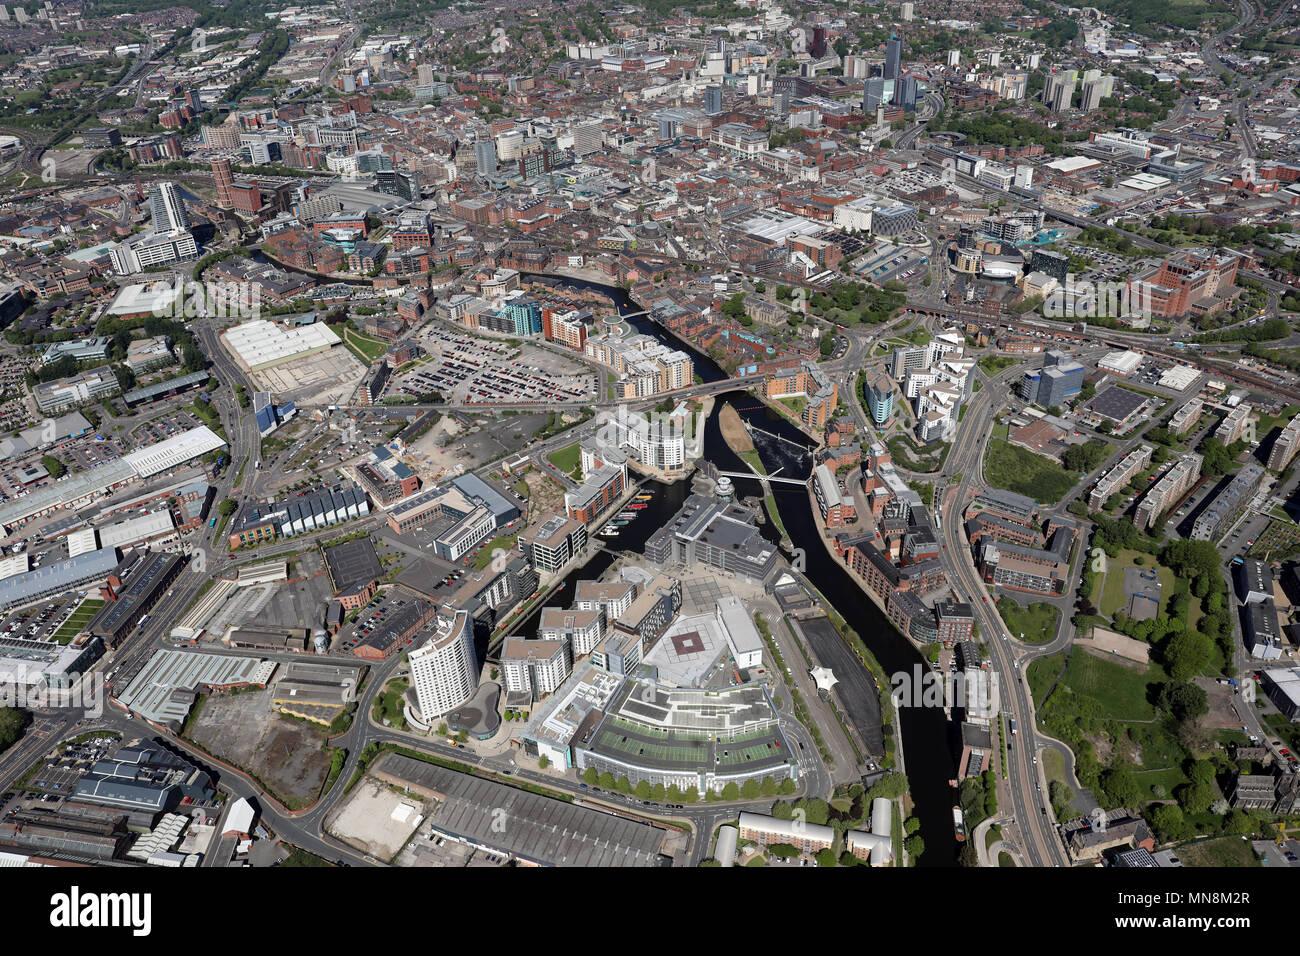 aerial view of Leeds Dock with Leeds city centre skyline in the background, UK - Stock Image